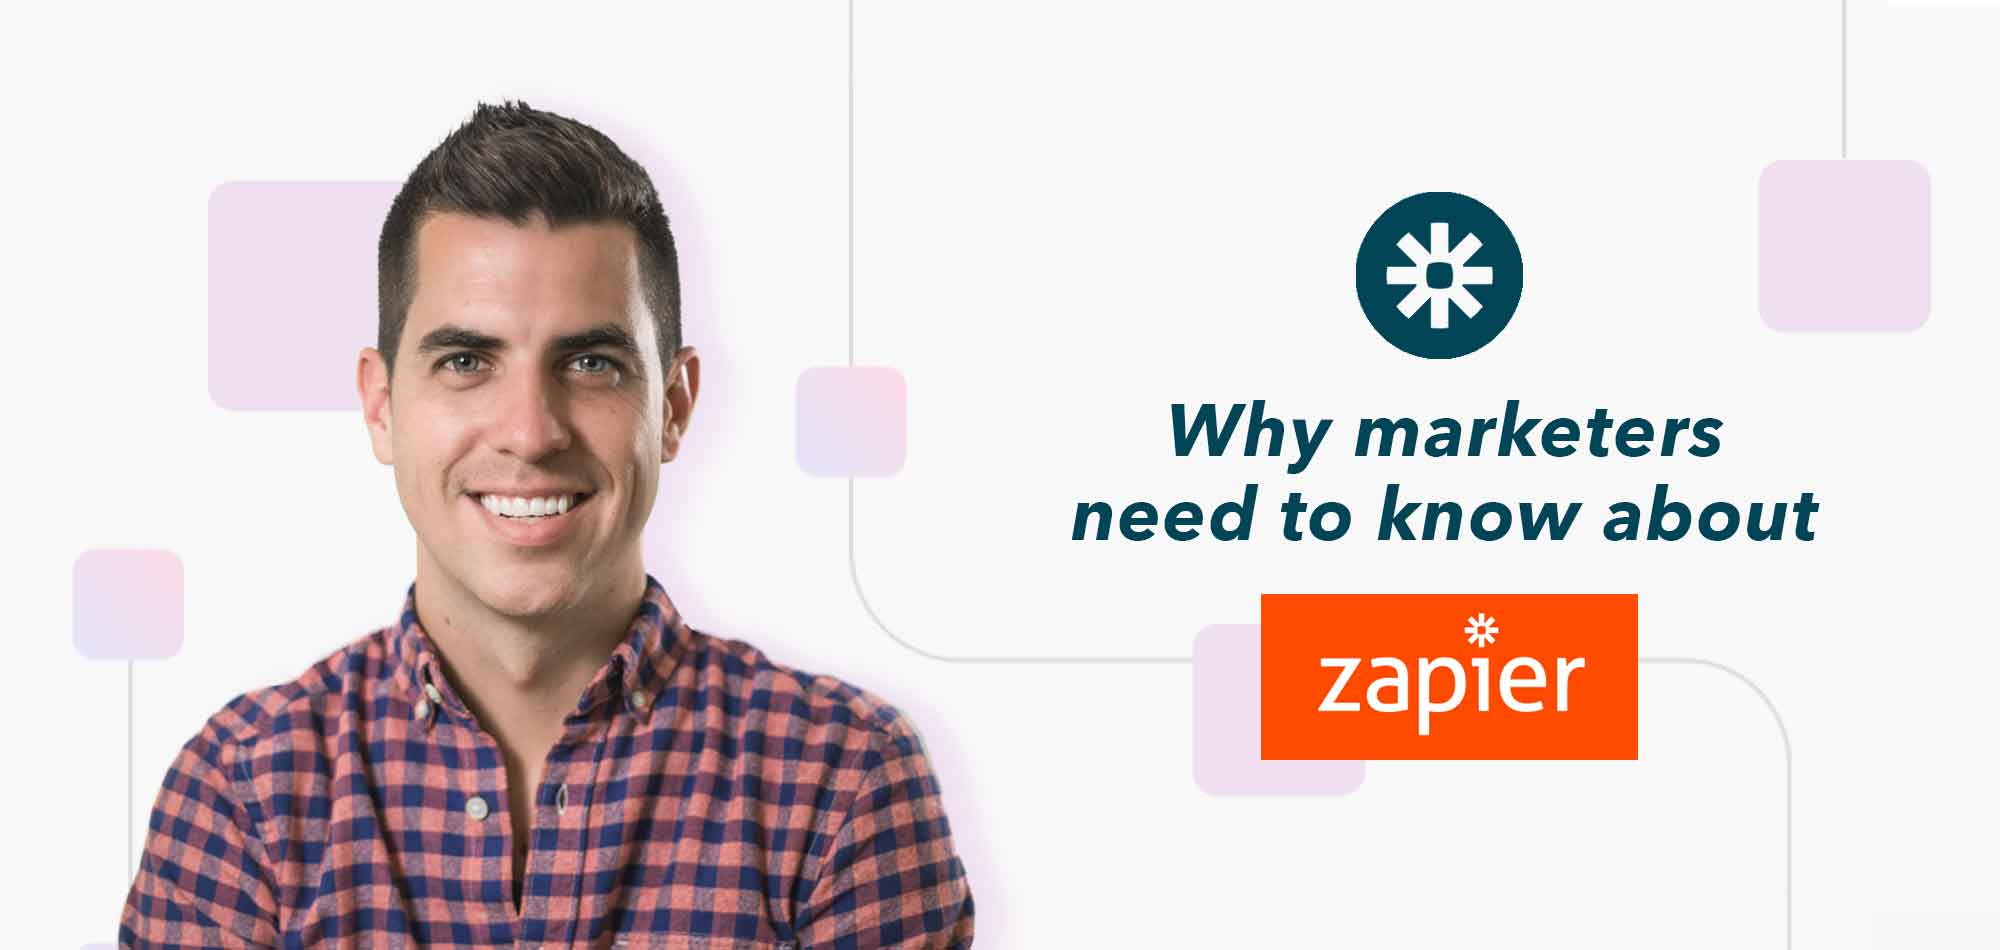 Why marketers need to know about Zapier